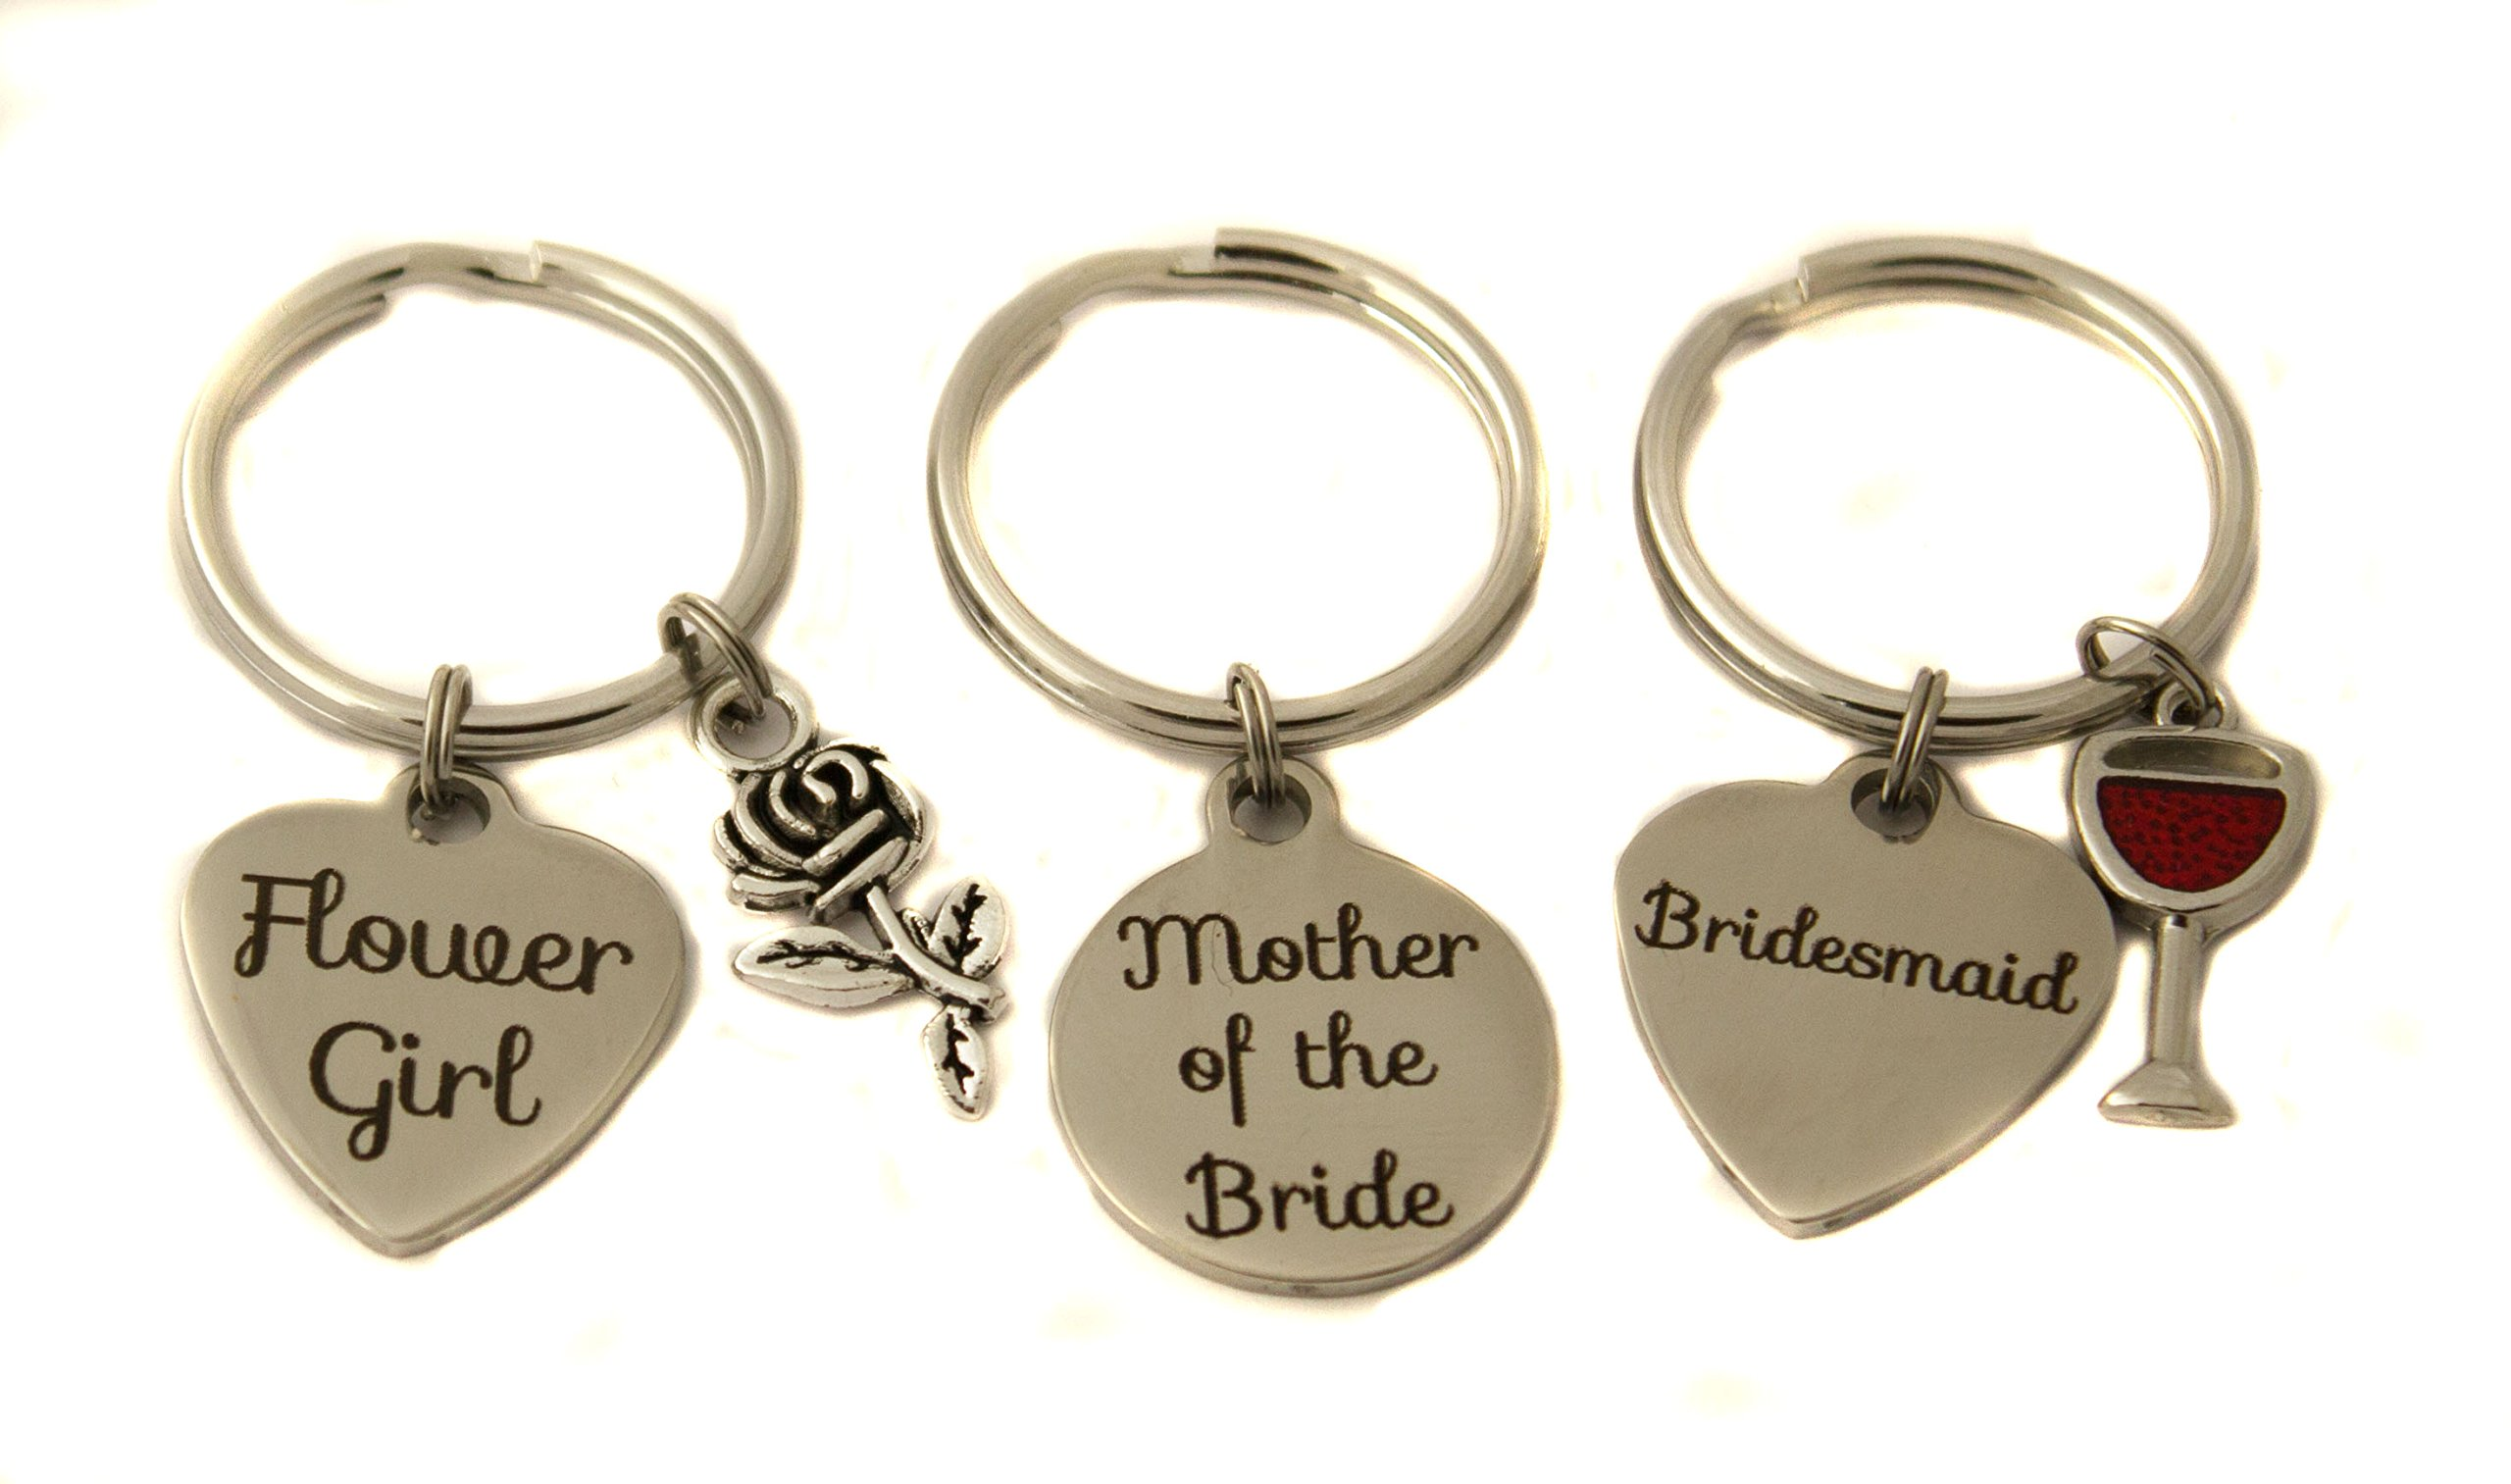 Heart Projects Stainless Steel Bridal Party Charm Keychain Bag Charm Wedding Gift